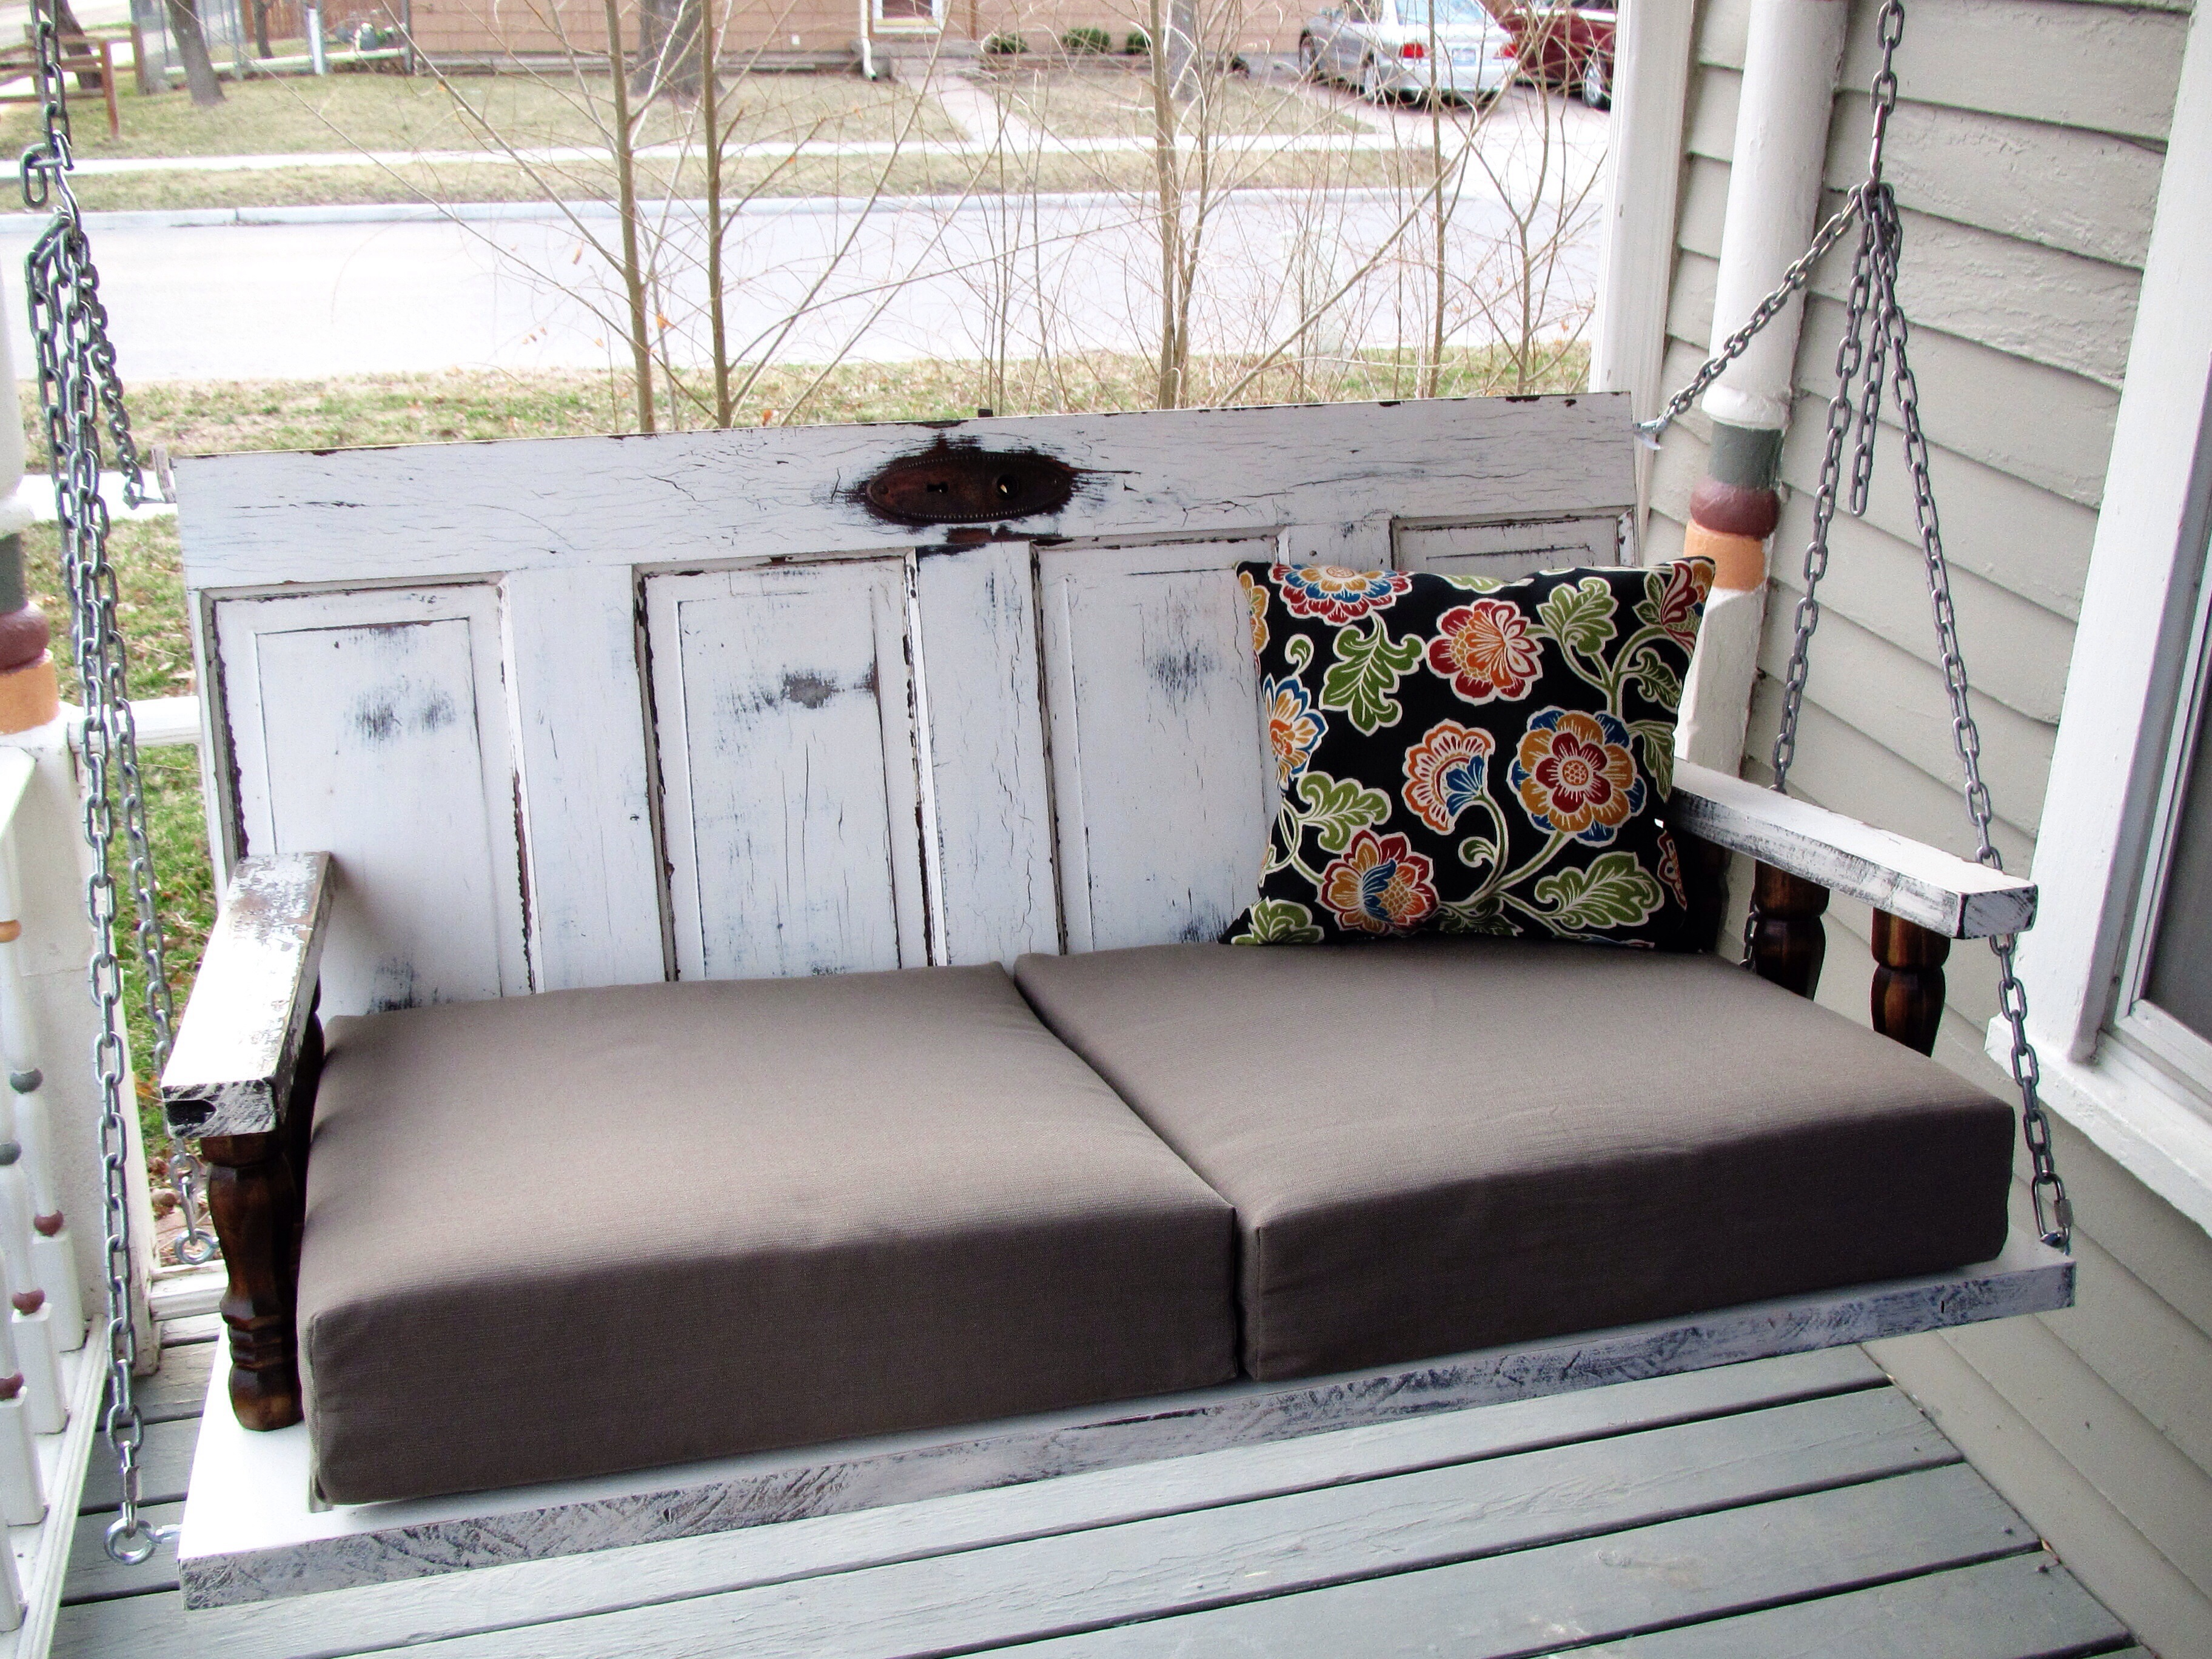 How To Build A Porch Swing Getting Ready For Summer Enliven Your Porch With Comfy Swings